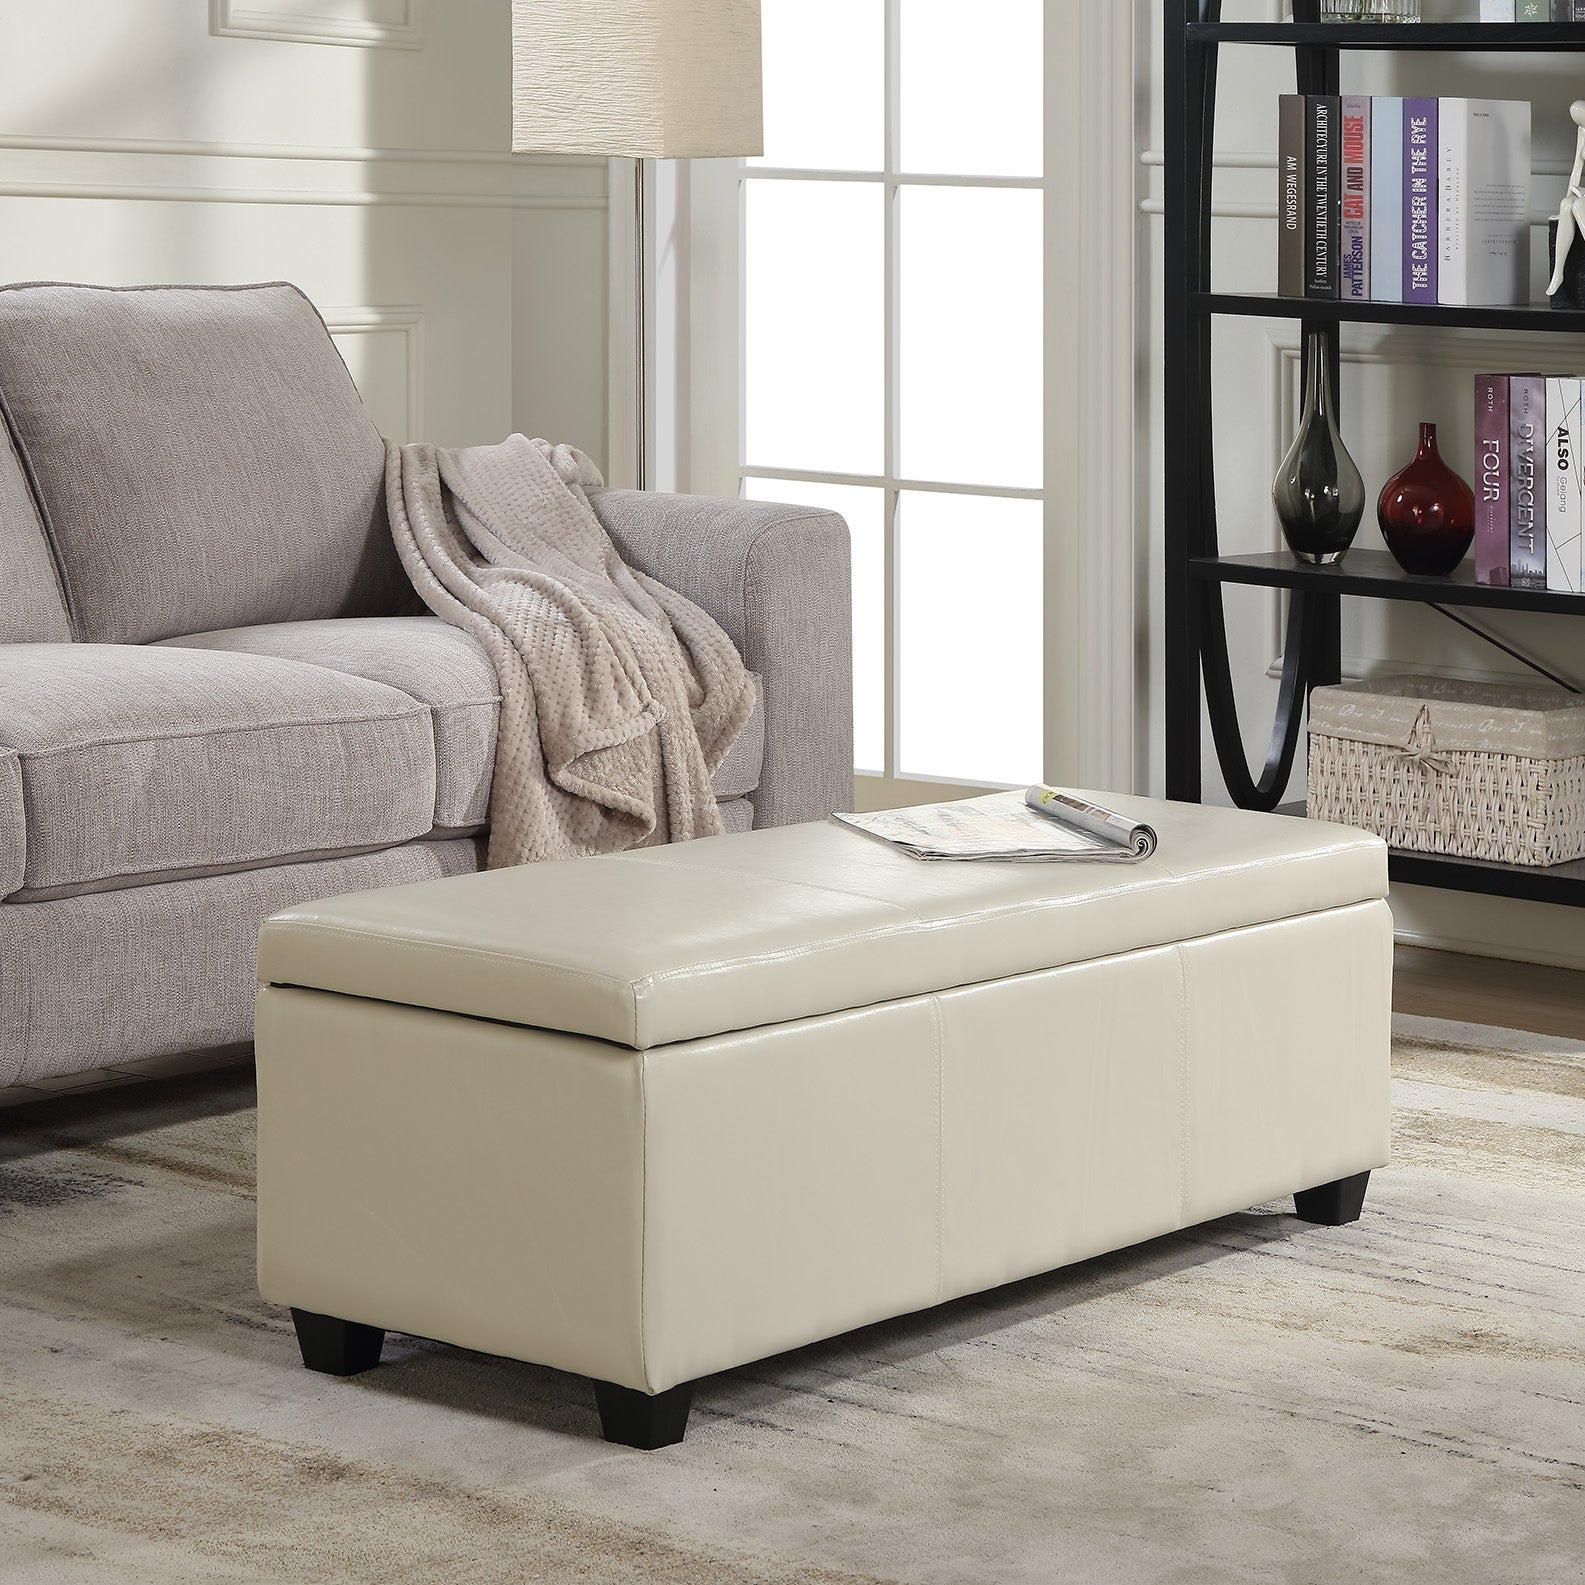 Belleze modern elegant ottoman storage bench living bedroom room home faux leather 48 inch cream